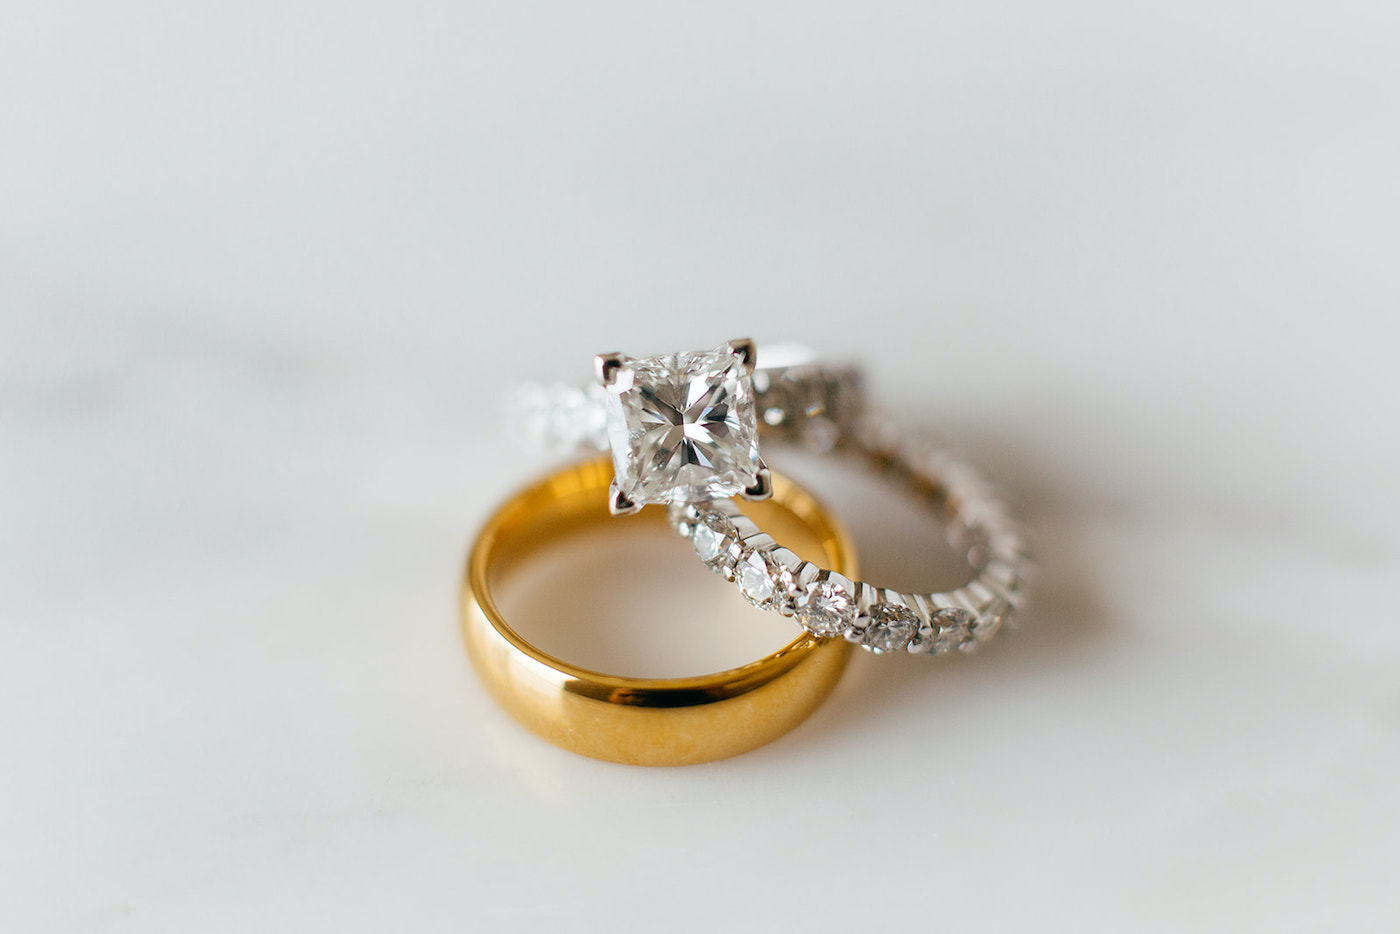 Florida Wedding Rings, Princess Cut Diamond Engagement Ring with Diamond Band and Gold Groom's Ring